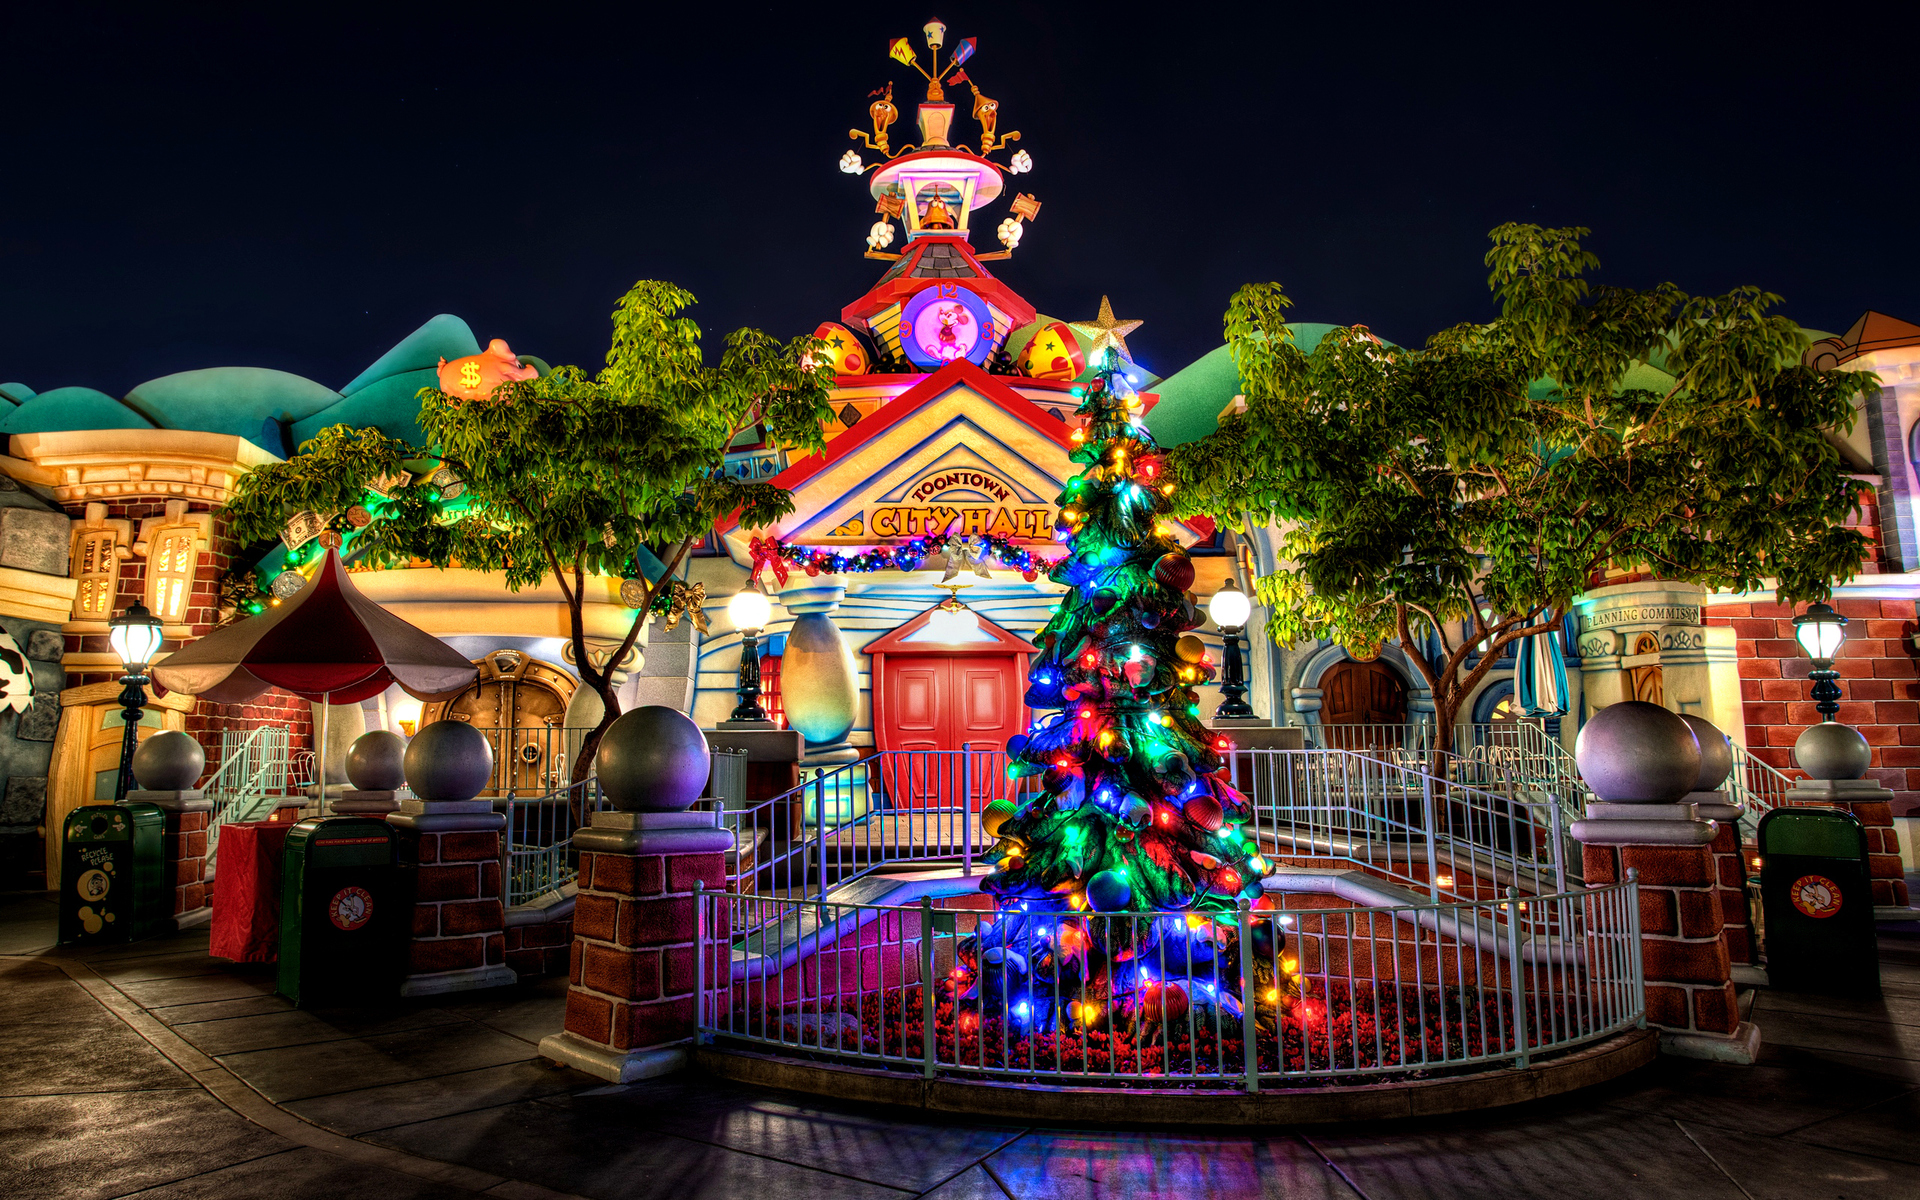 Disneyland Christmas   Desktop Wallpaper 1920x1200